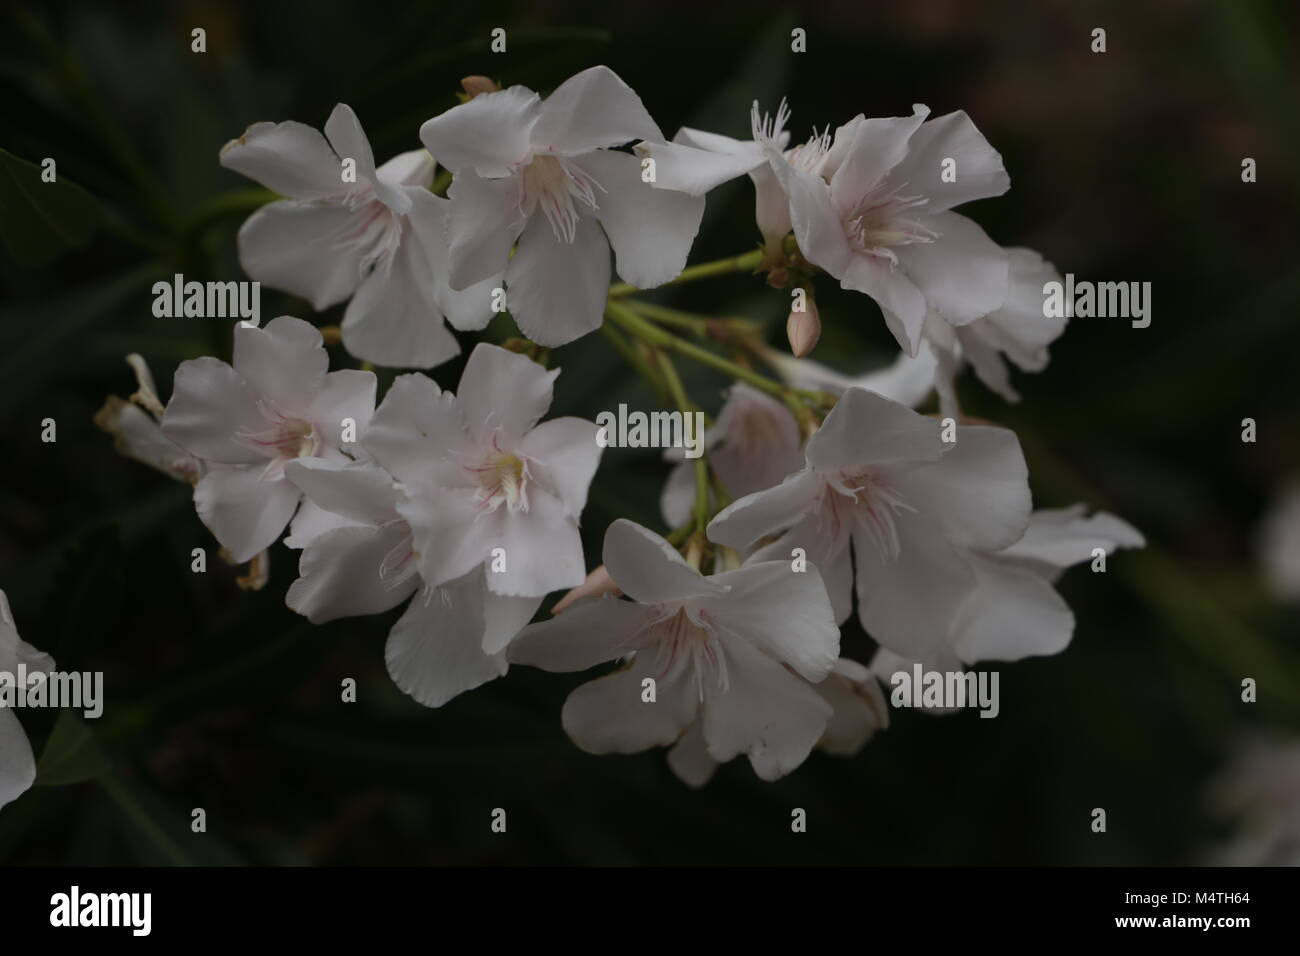 White Oleander Flowers Stock Photo 175102652 Alamy